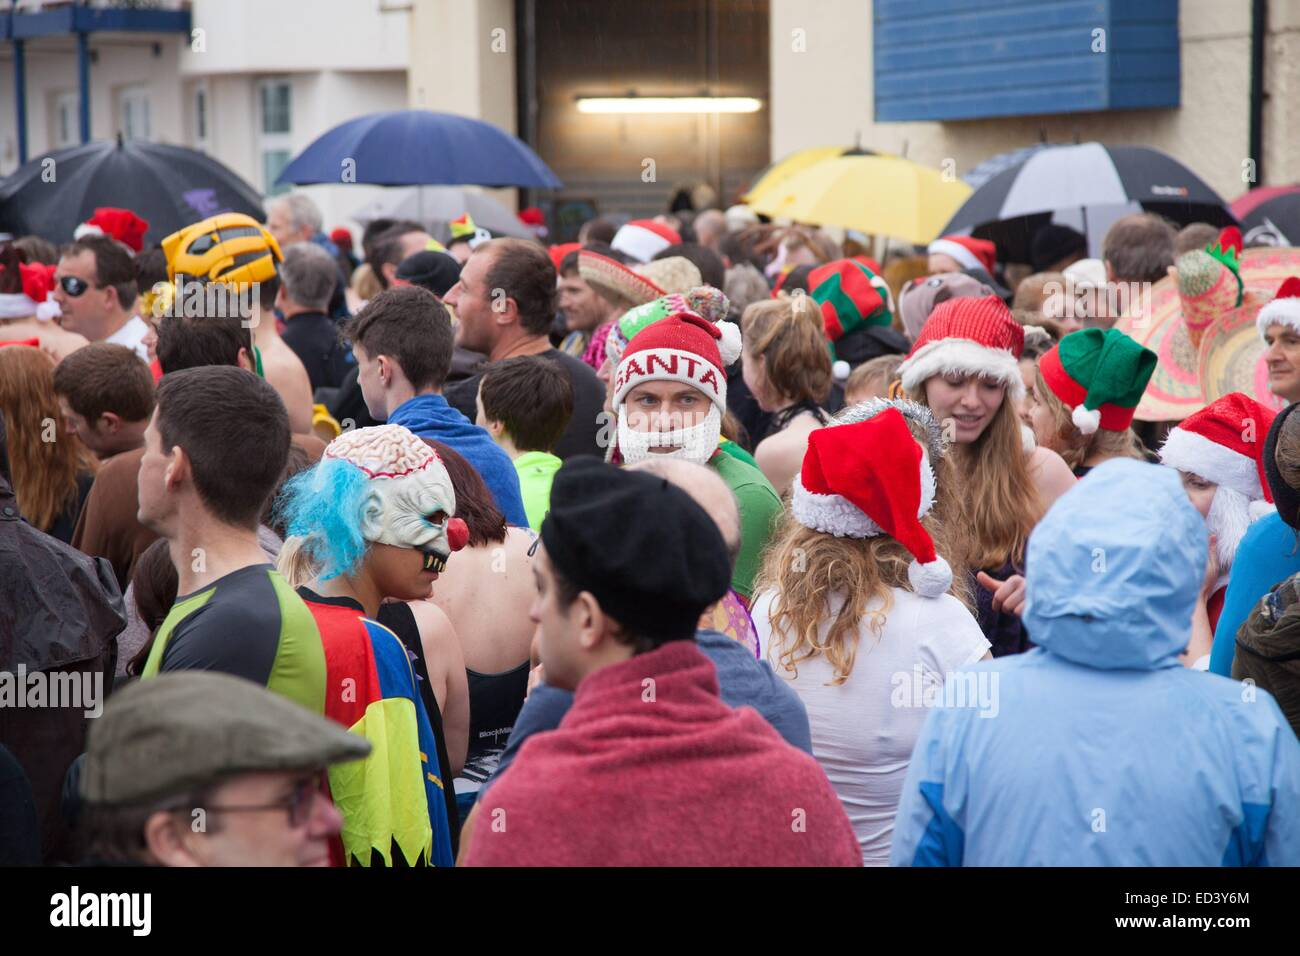 Sidmouth, Devon, UK. 26th December, 2014. Swimmers brave the freezing temperature of the English Channel at the - Stock Image